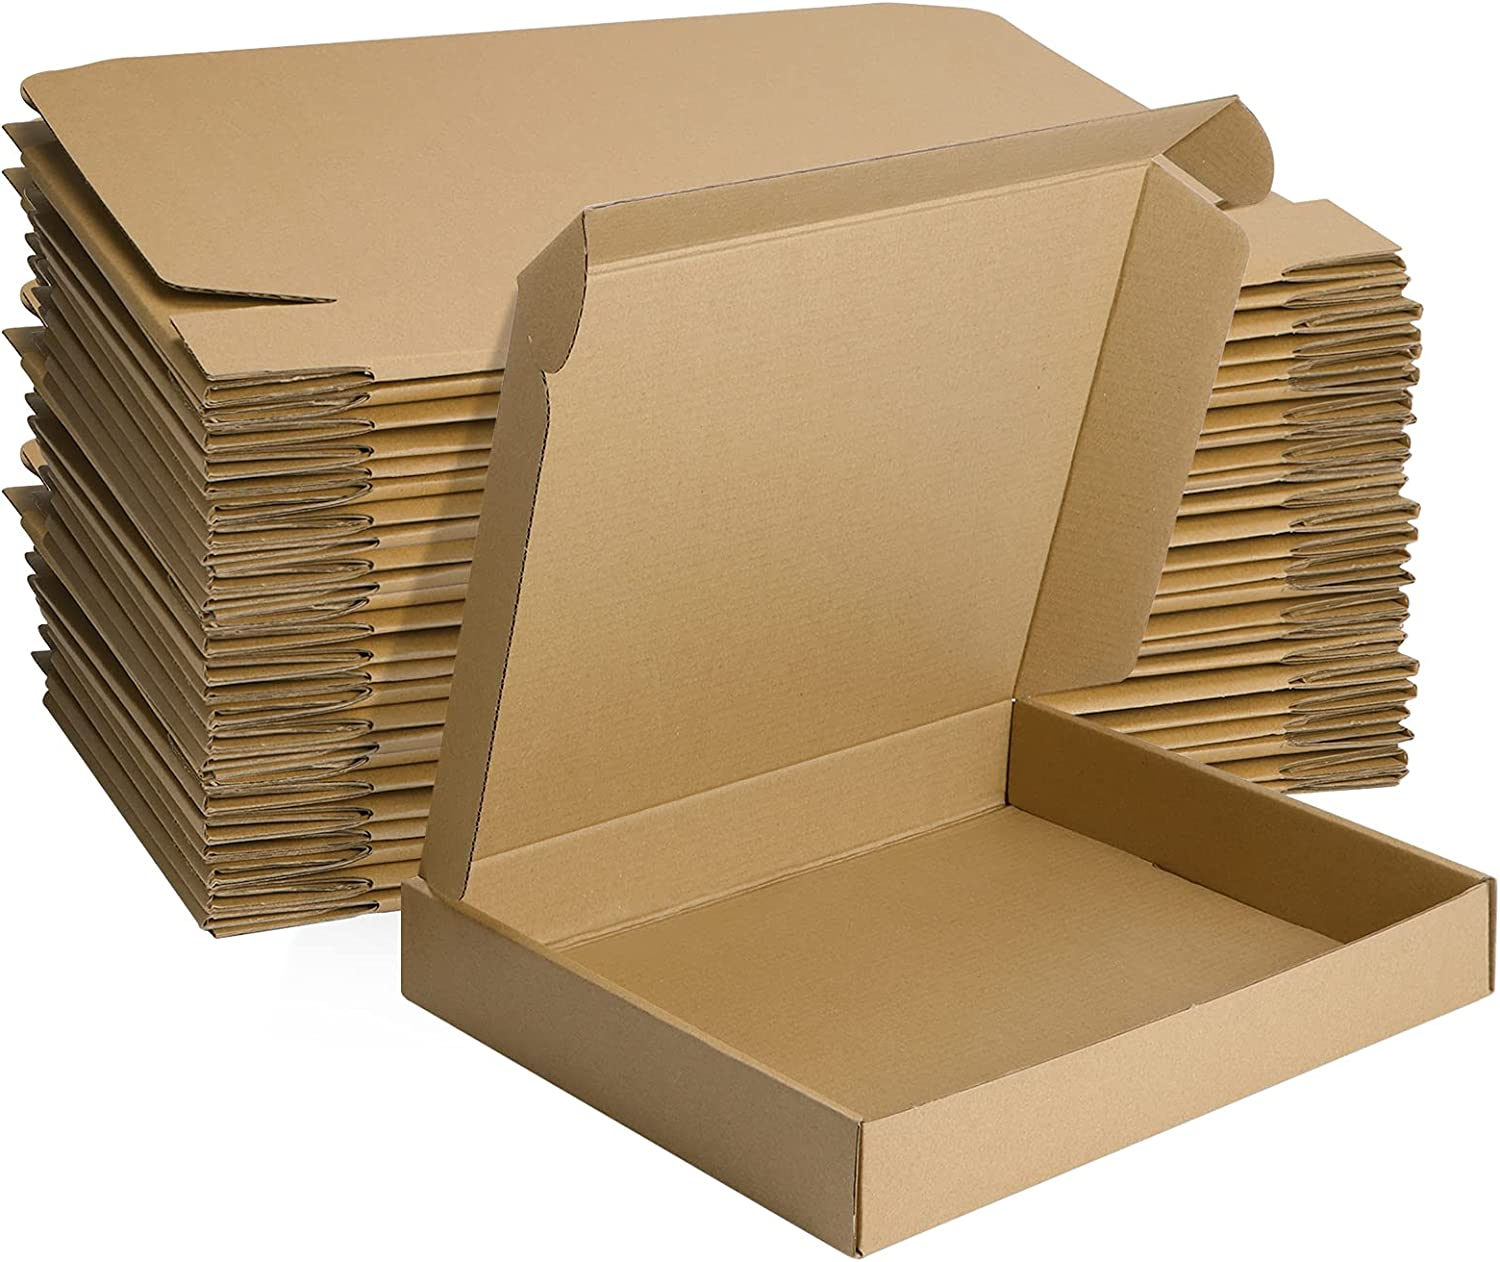 MEBRUDY 13x10x2 Inches Shipping Boxes Pack of 25, Small Corrugated Cardboard Box for Mailing Packing Literature Mailer